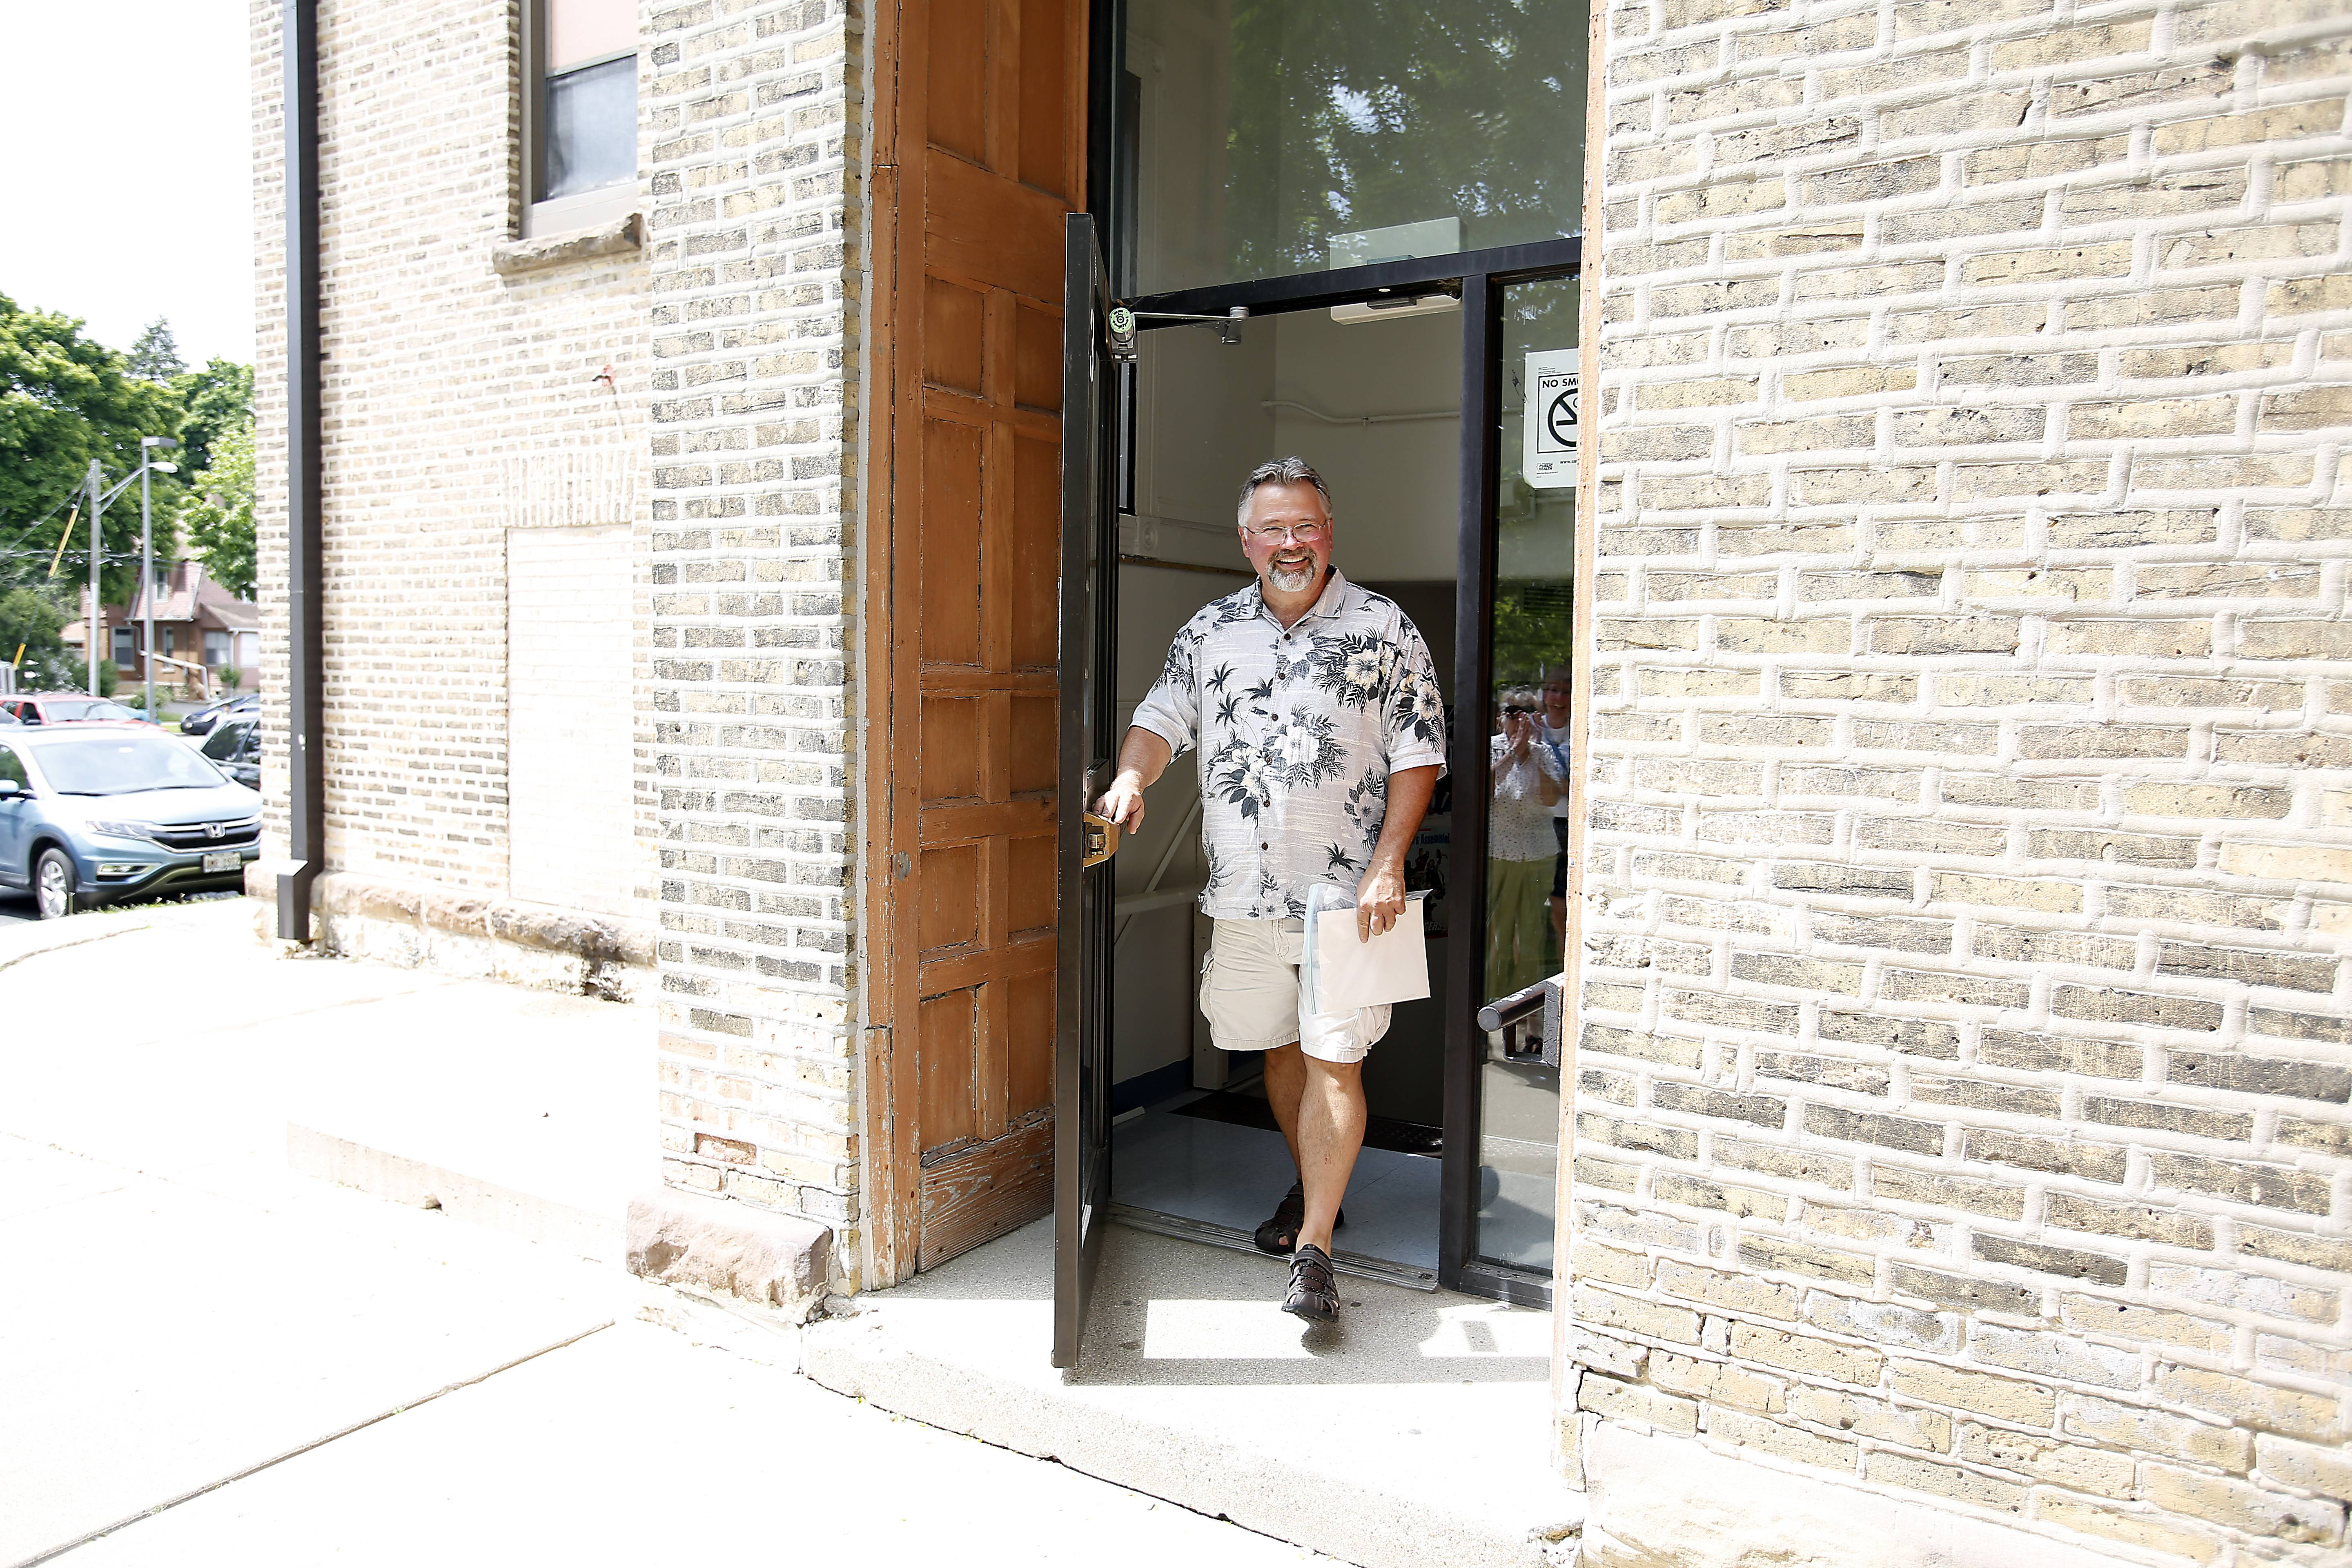 Gordon Whiting, Elgin High School social studies teacher, exits the district through the same door he first entered as a kindergartner at Garfield Elementary School in Elgin.